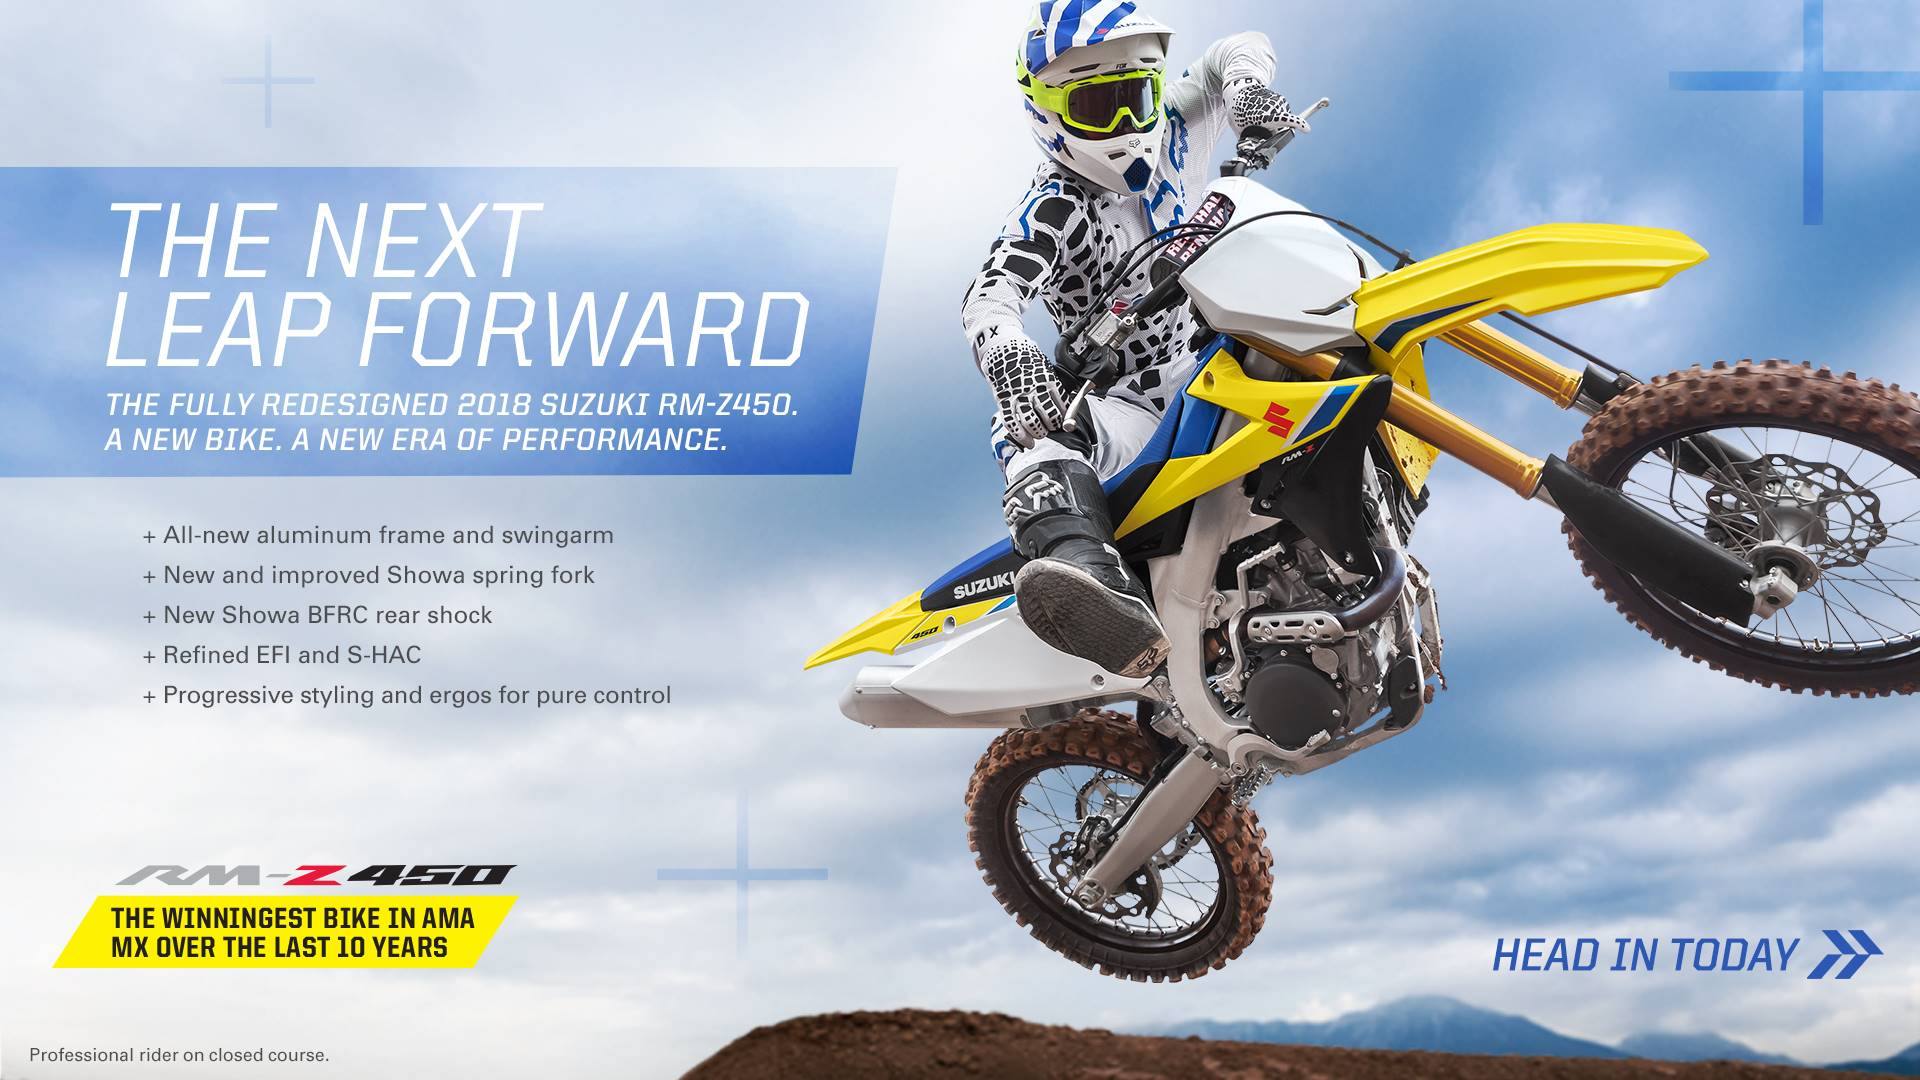 Suzuki Motor of America Inc. Suzuki Ride into the New Year with Motocross and Offroad Models